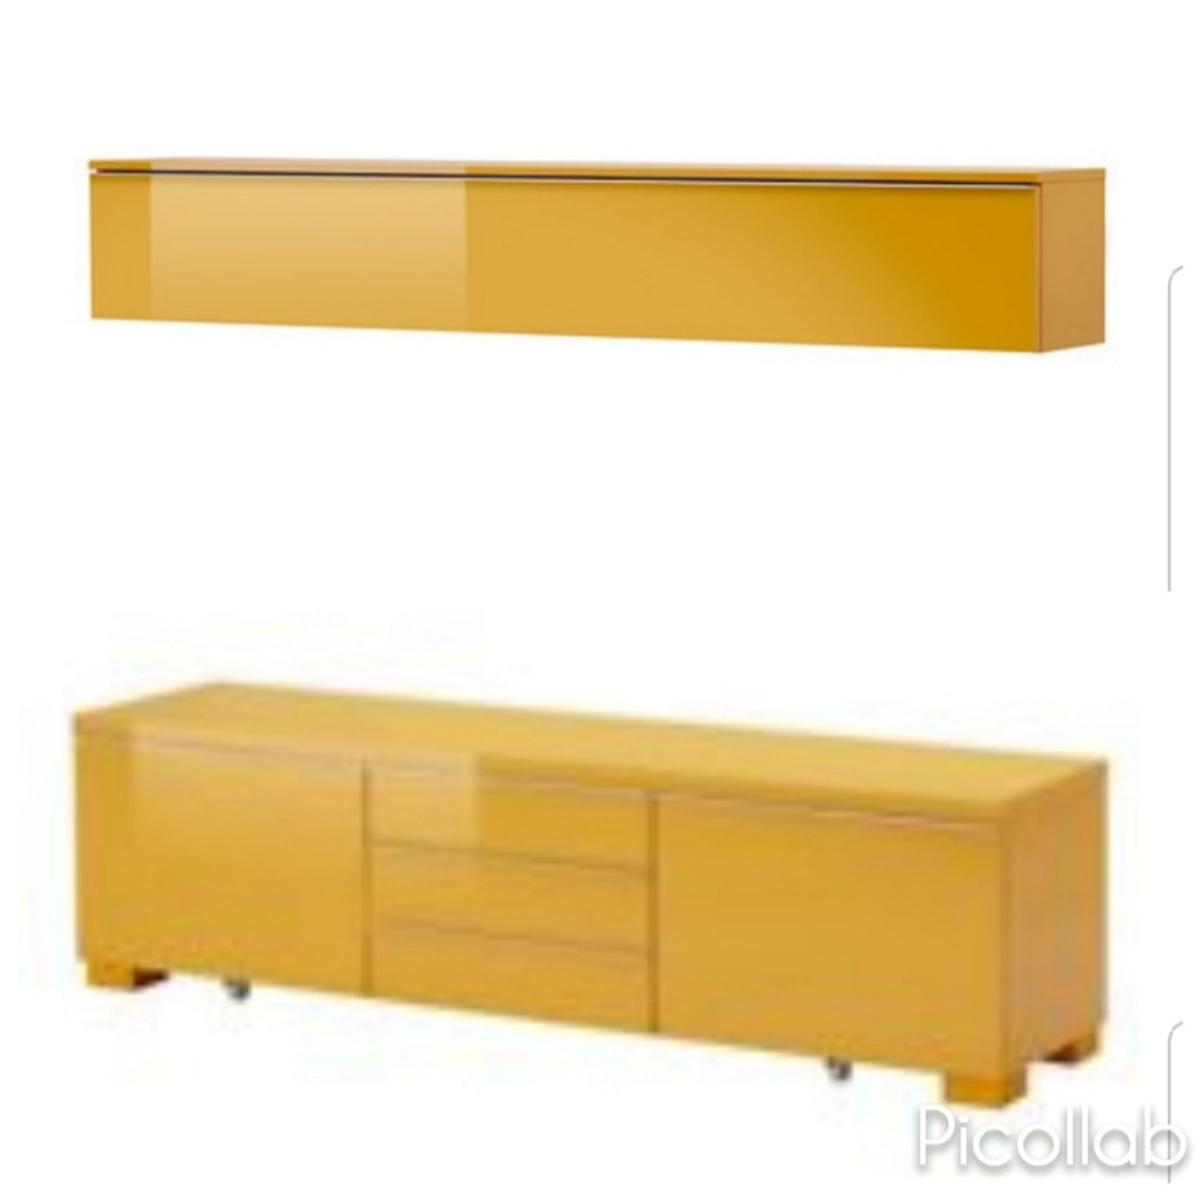 Https Prepona Info Image Collection H C3 A4ngeschrank Ikea Besta